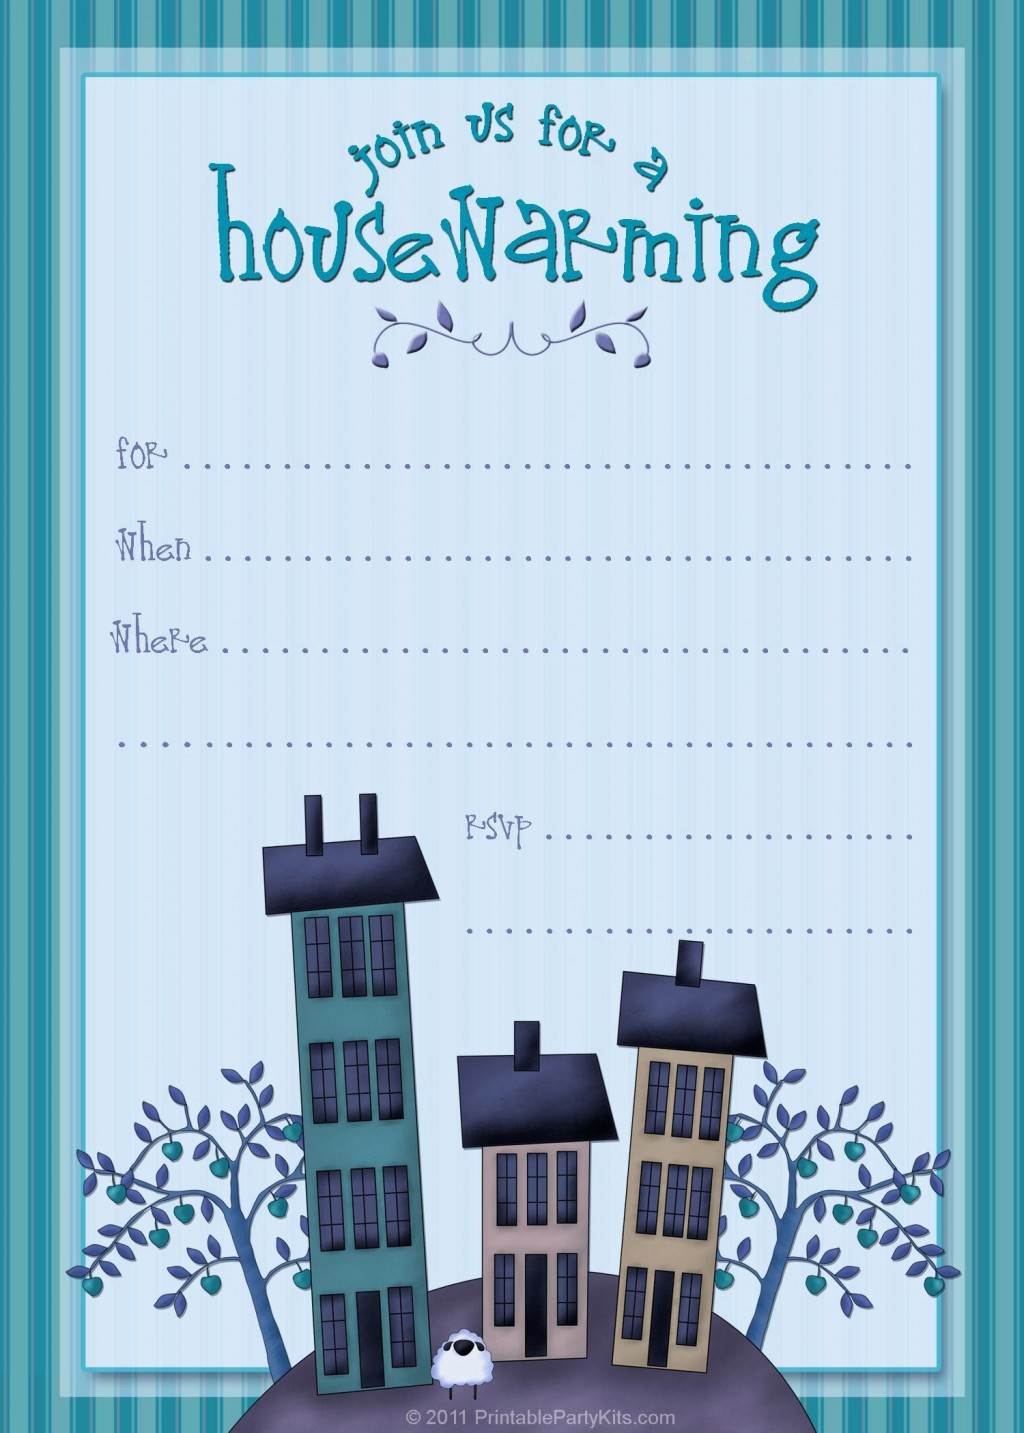 003 Dreaded Housewarming Party Invitation Template Highest Clarity  Templates Free Download CardLarge